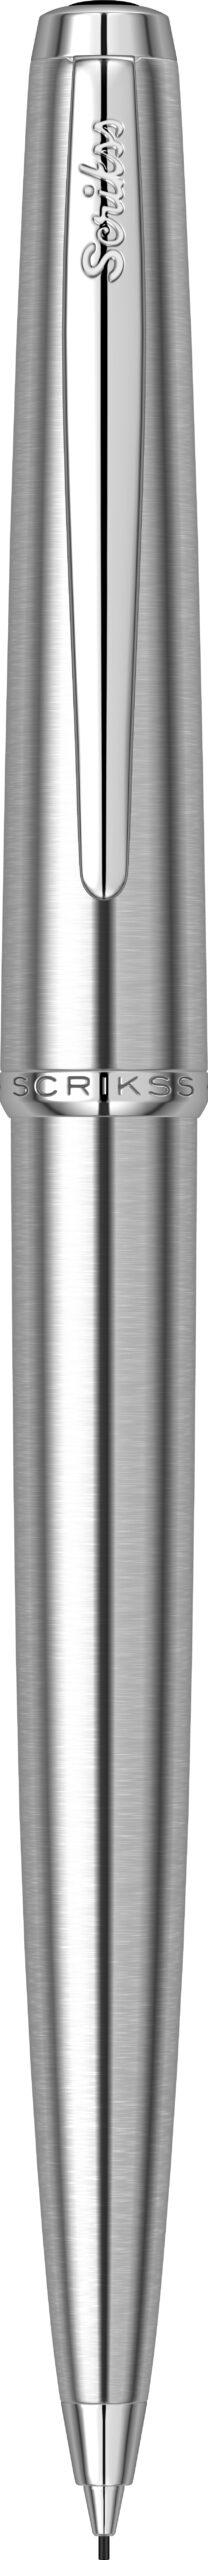 Stainless Steel CT Creion Mecanic 0.7 - Scrikss 1